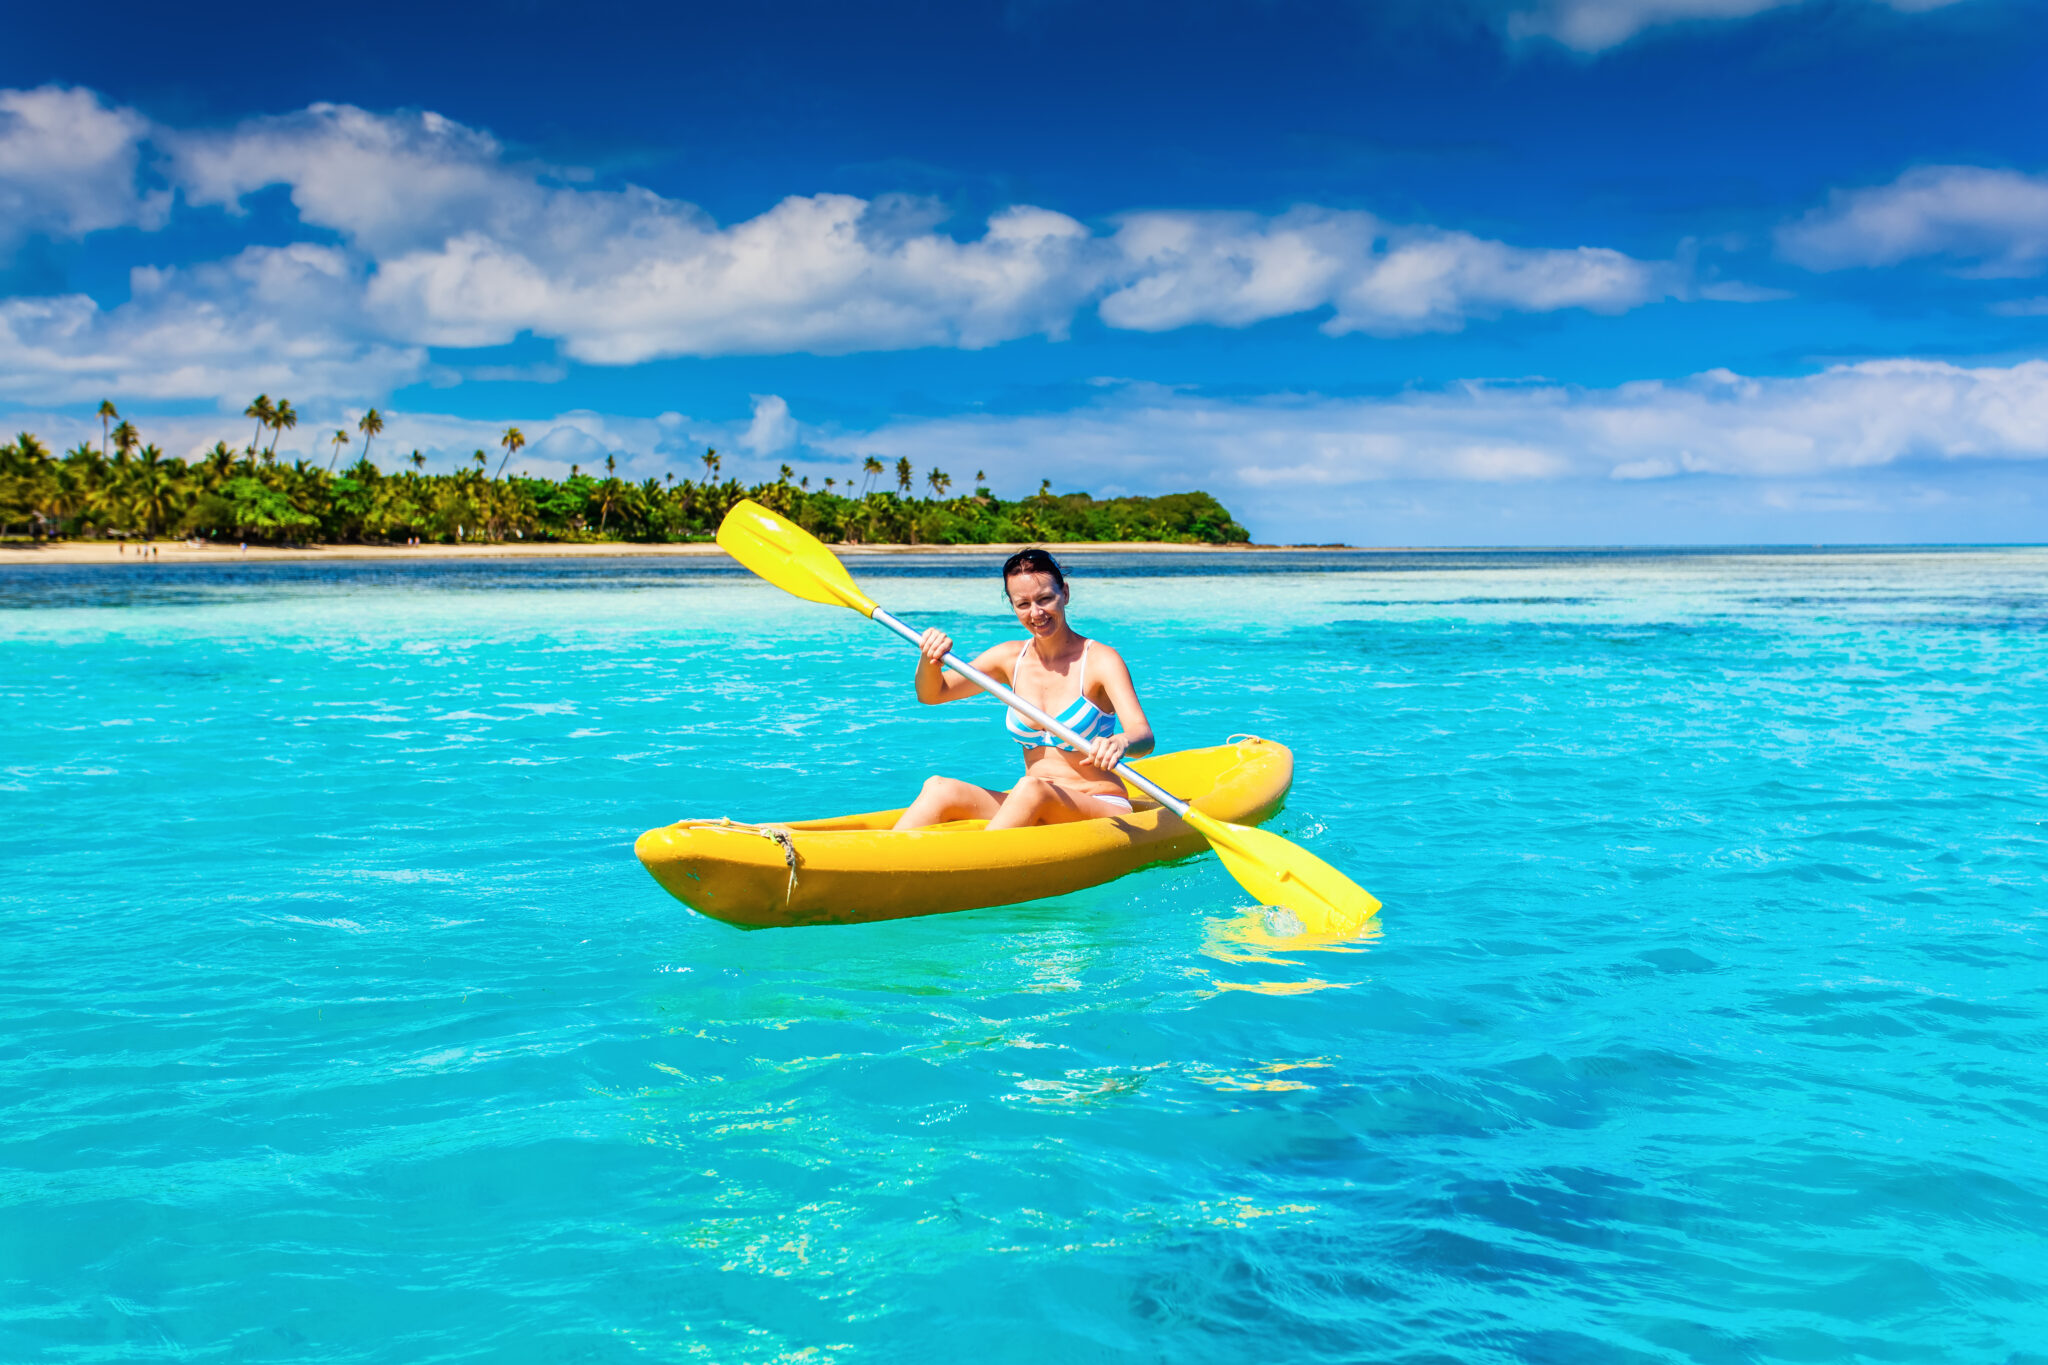 Woman Kayaking in the Ocean on Vacation in tropical Fiji island